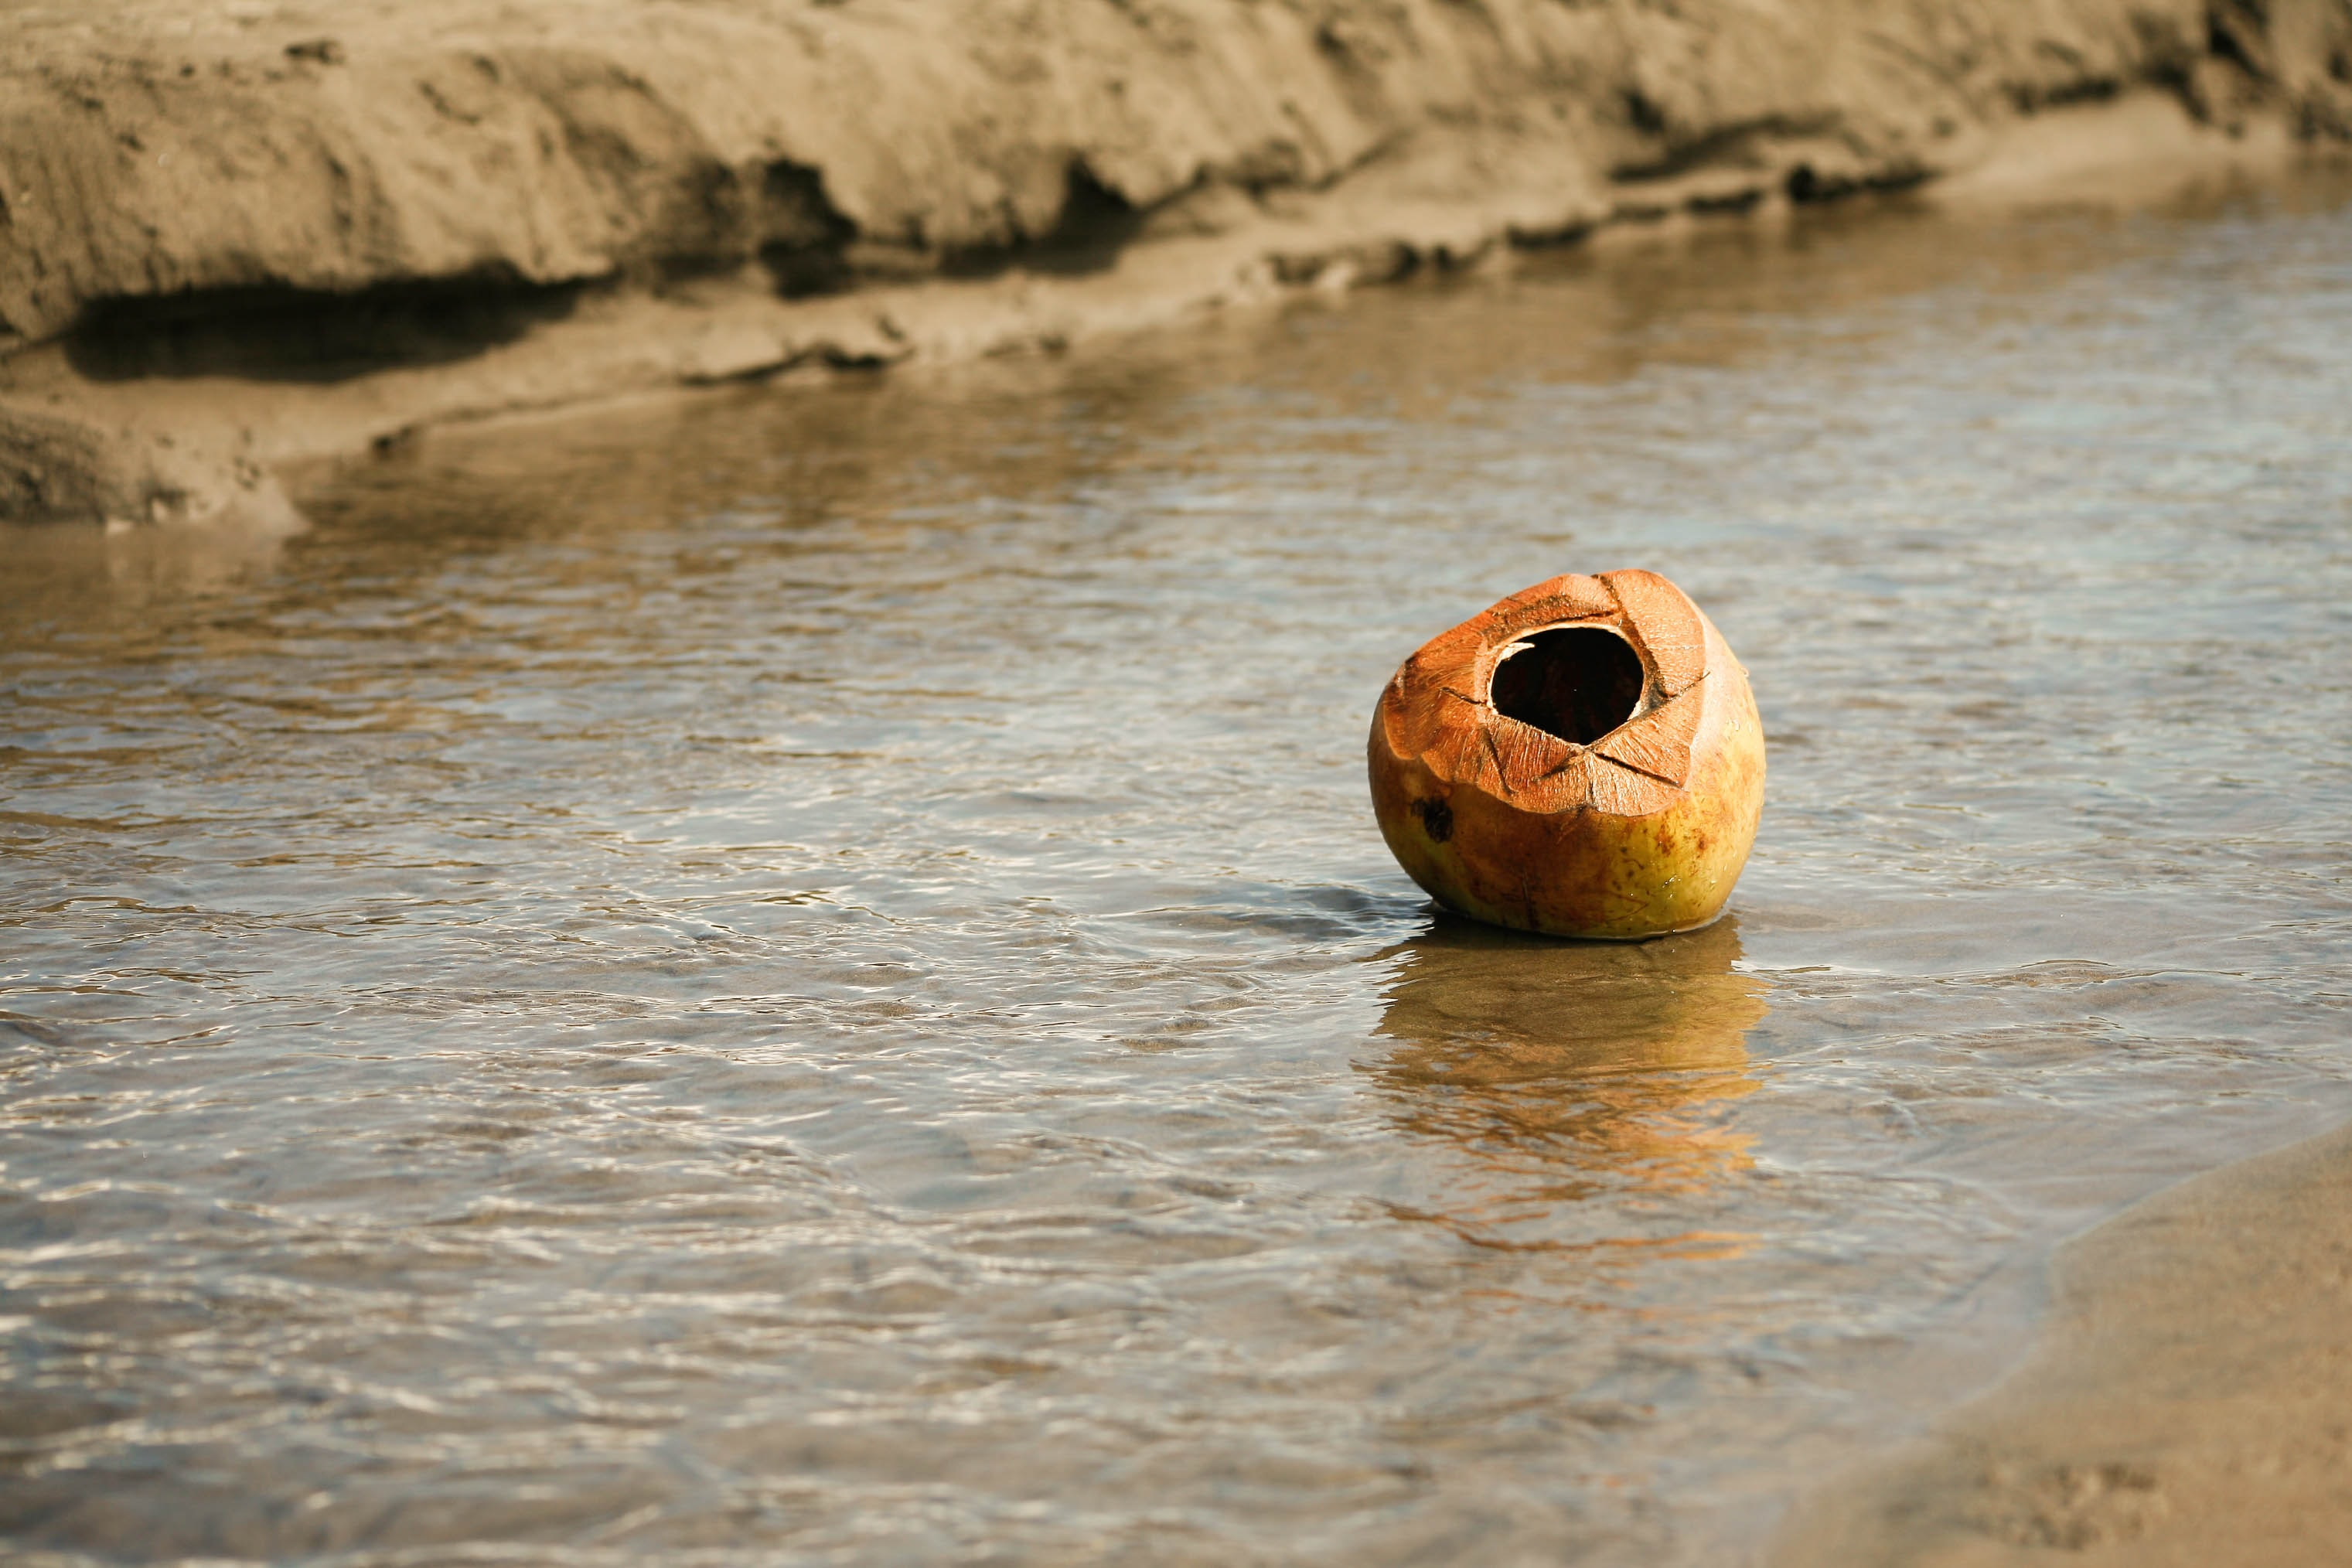 coconut floating on river during daytime